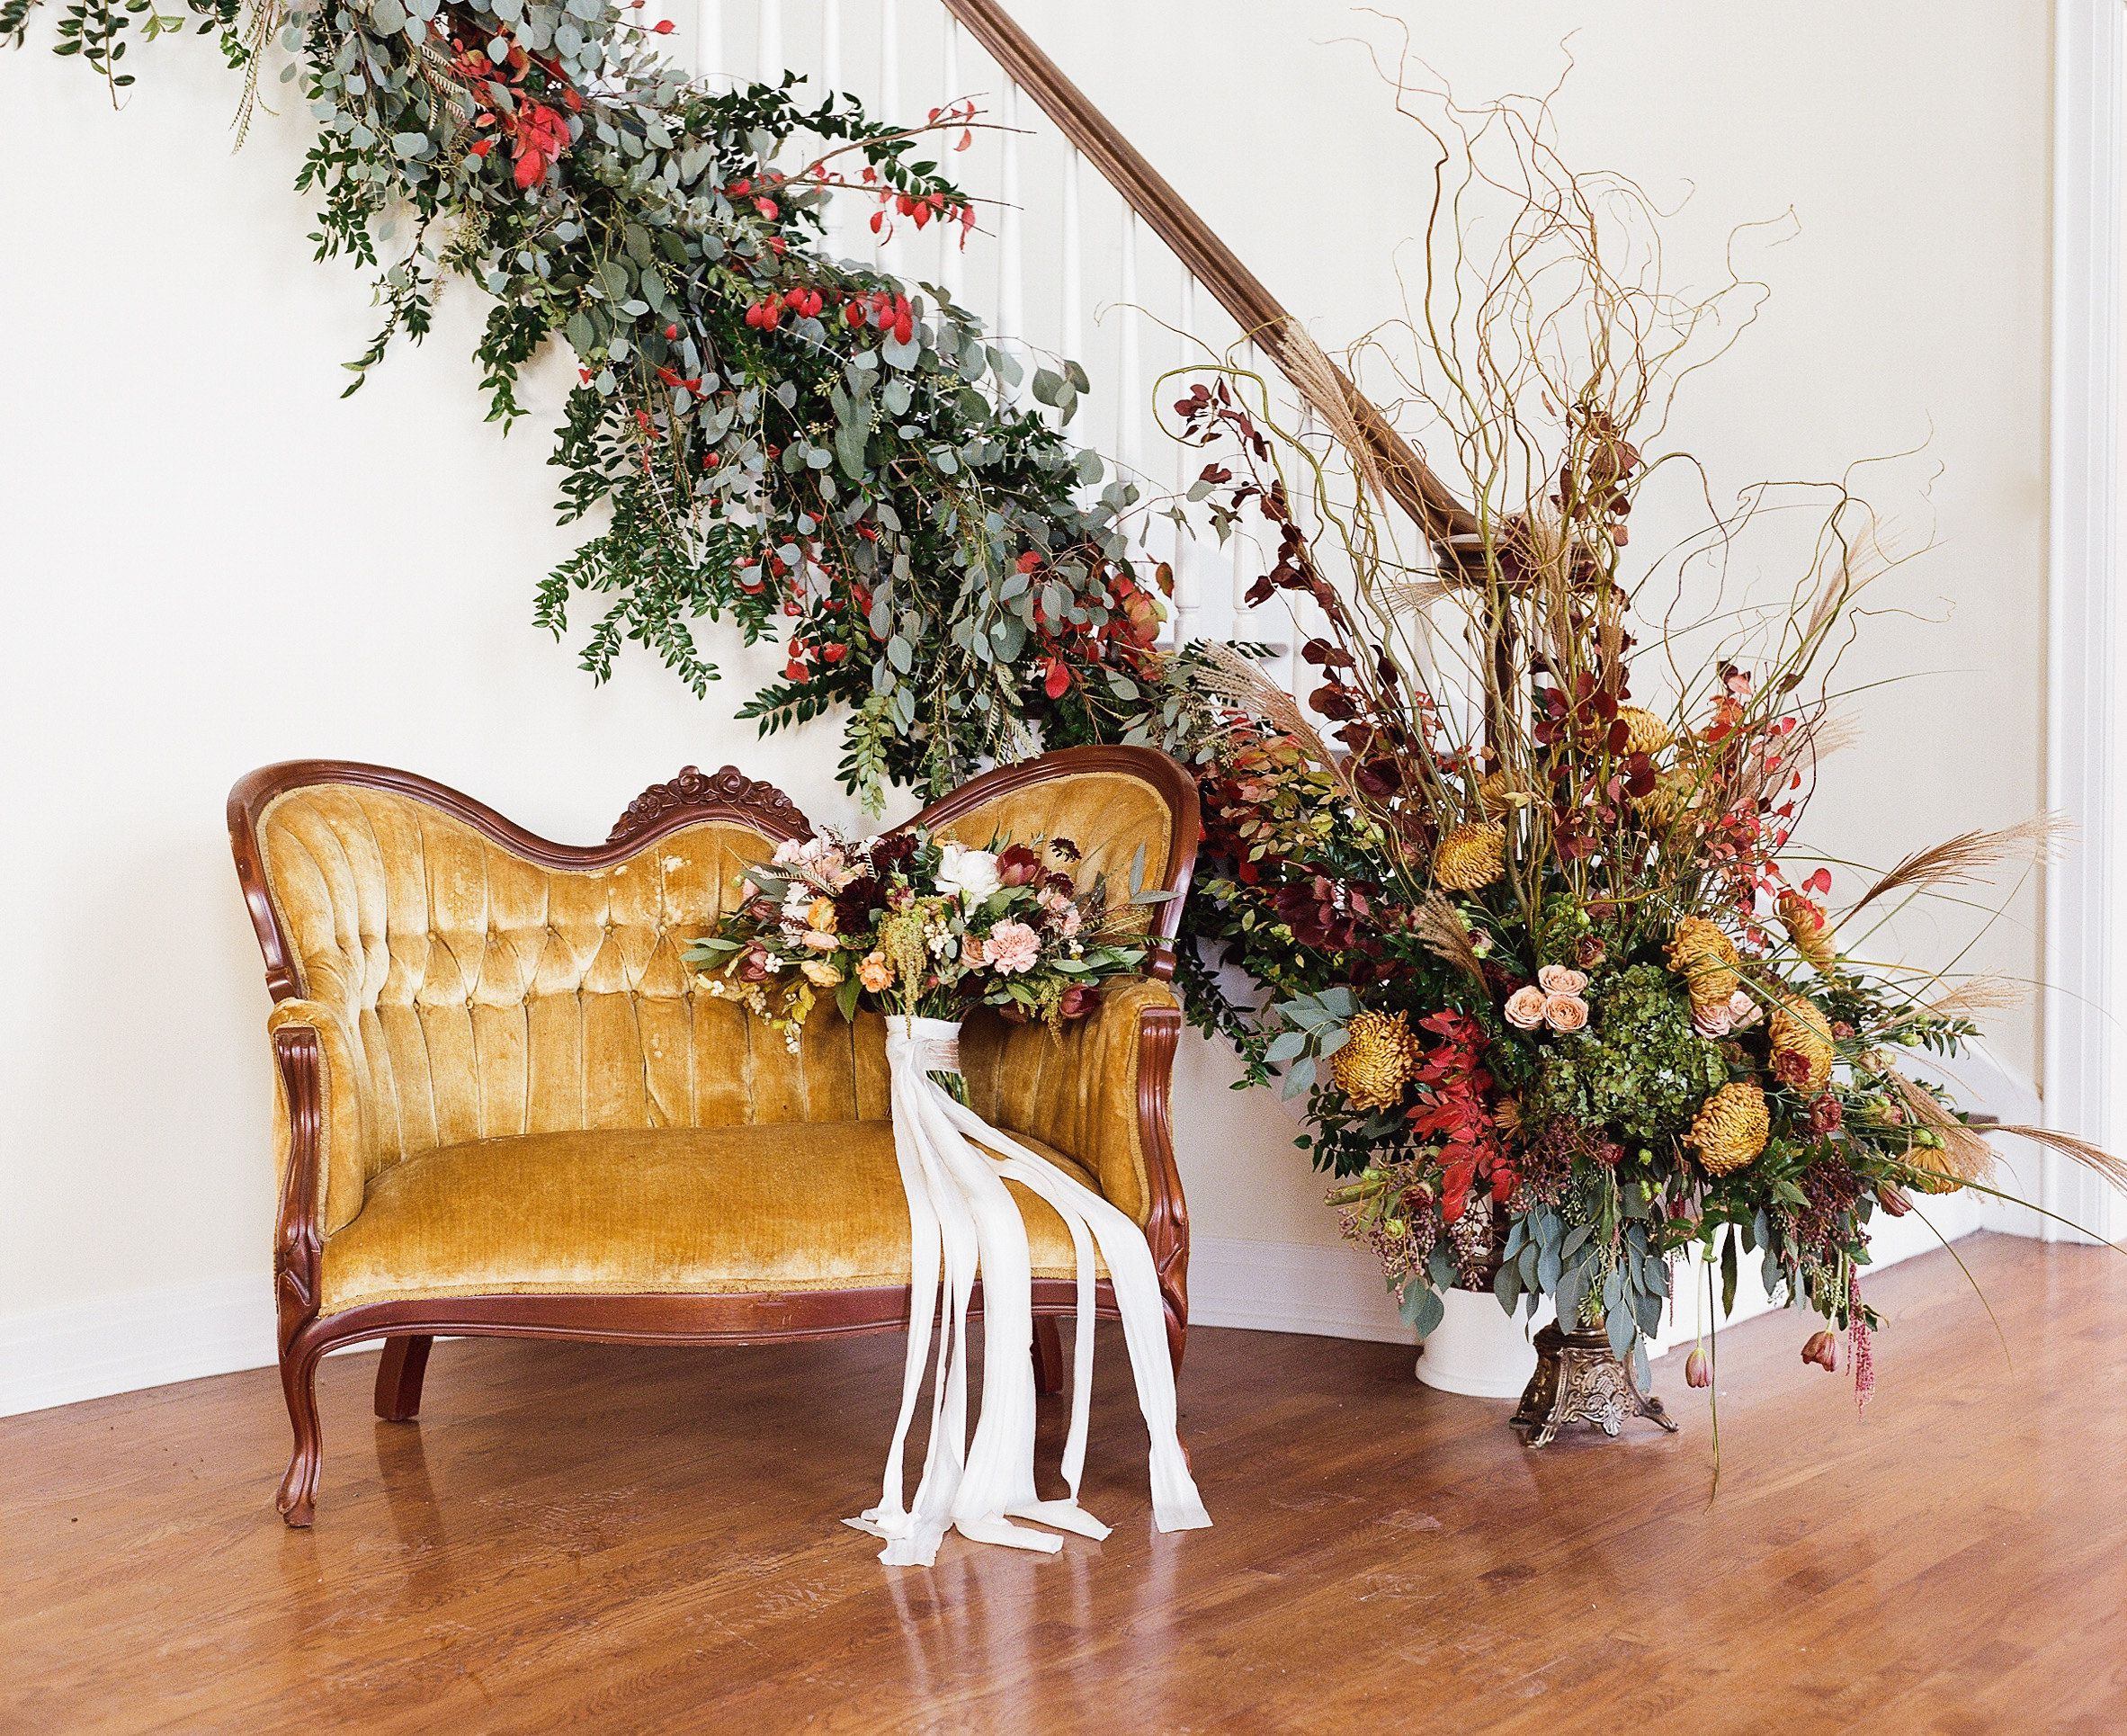 Lost And Found Vintage Rentals Dayton Ohio Our Autumn Settee Being Used For Bridal Detail Portrai Vintage Inspired Wedding Wedding Rentals Dayton Weddings